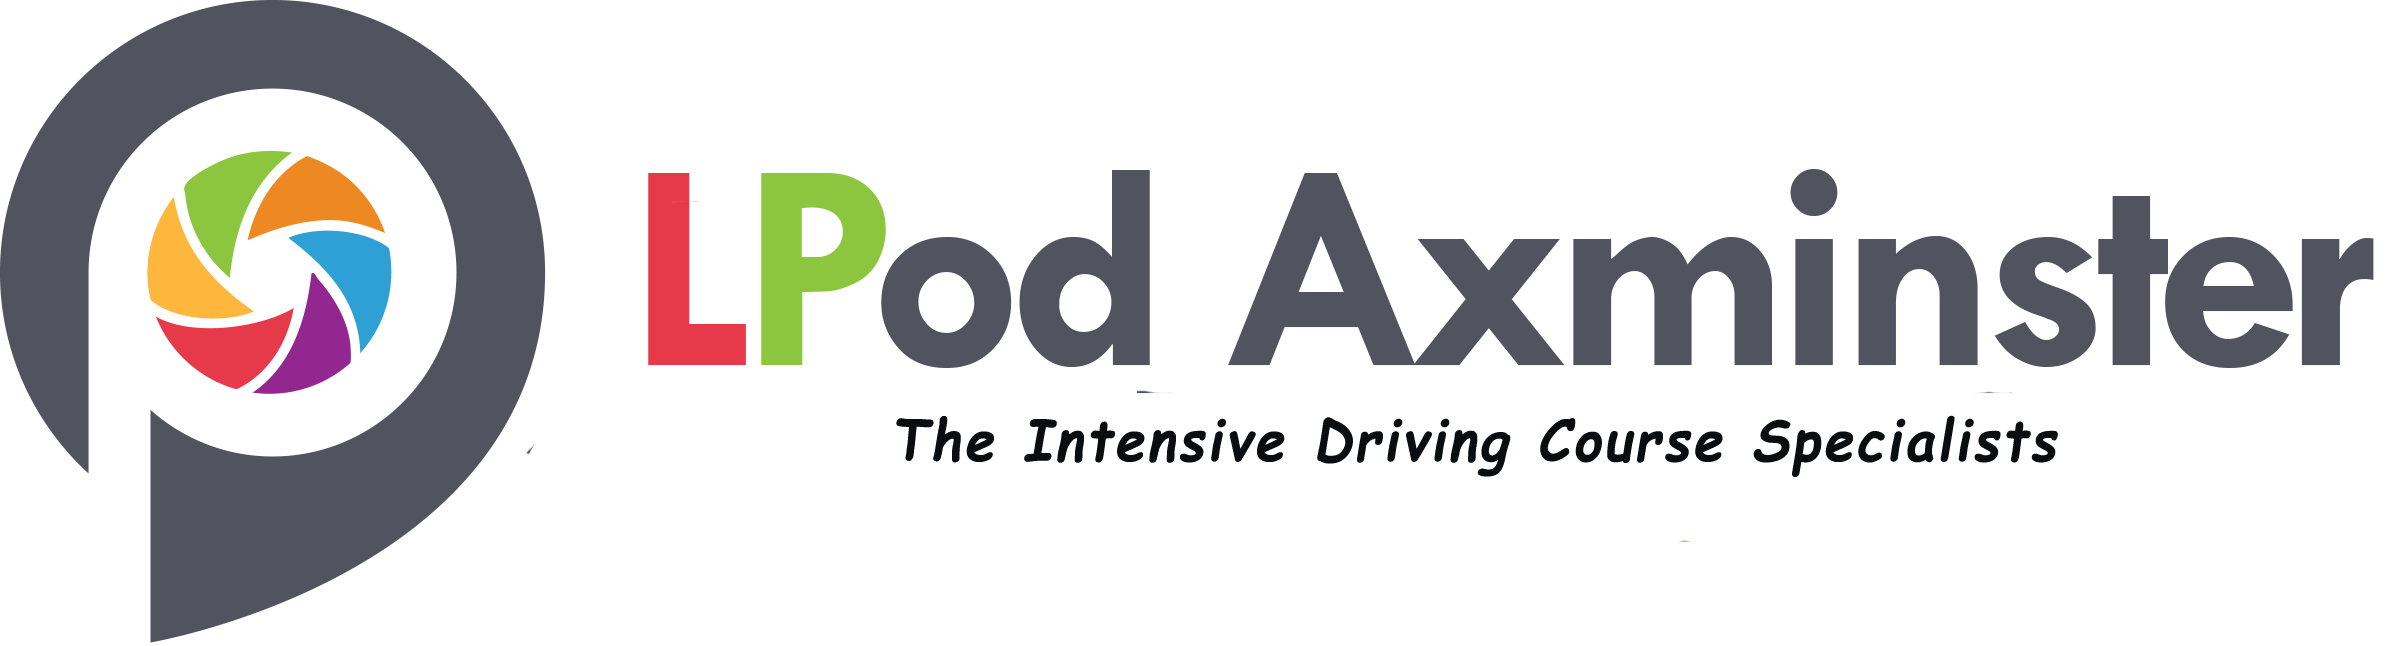 intensive driving courses axminster, fast pass driving courses axminster, one week driving courses axminster